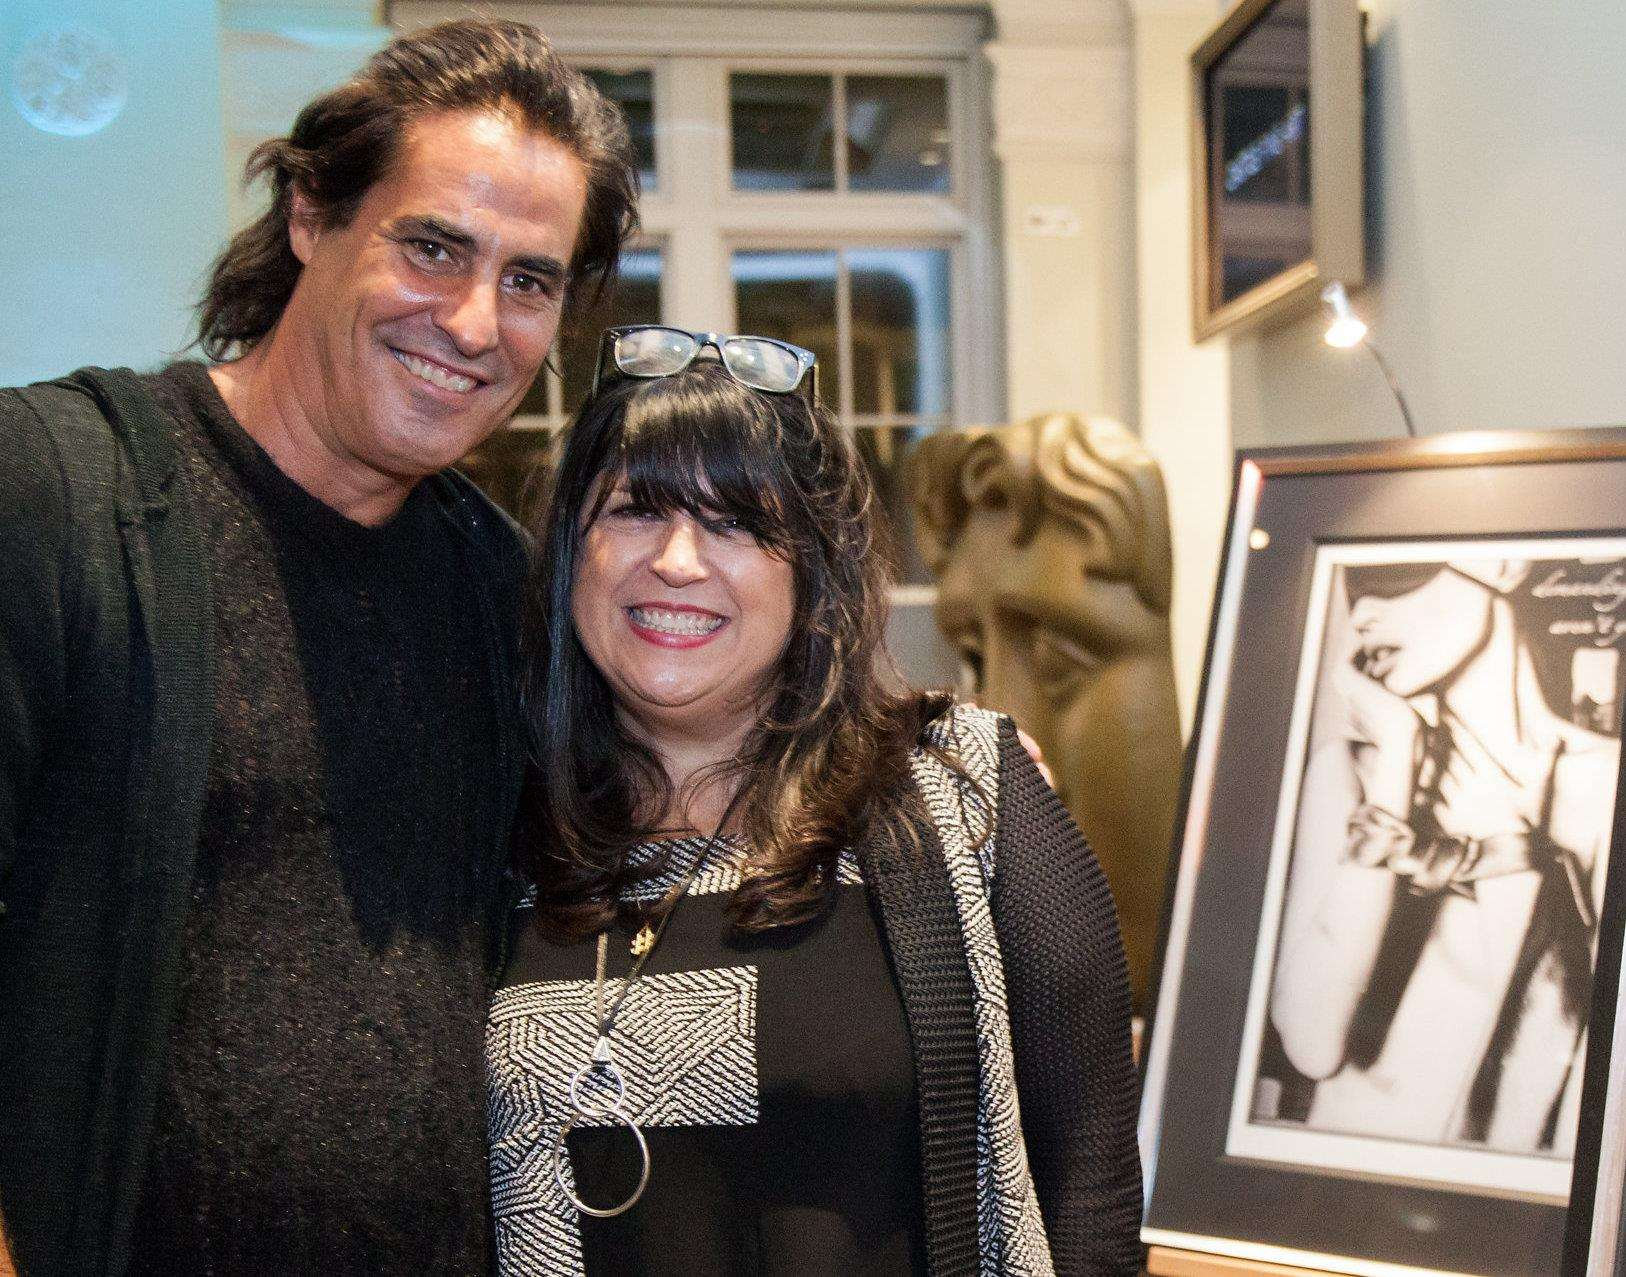 Photographer turned artist Raphael Mazzucco presents a Fifty Shades of Grey art collection at Bluewater with author E.L. James